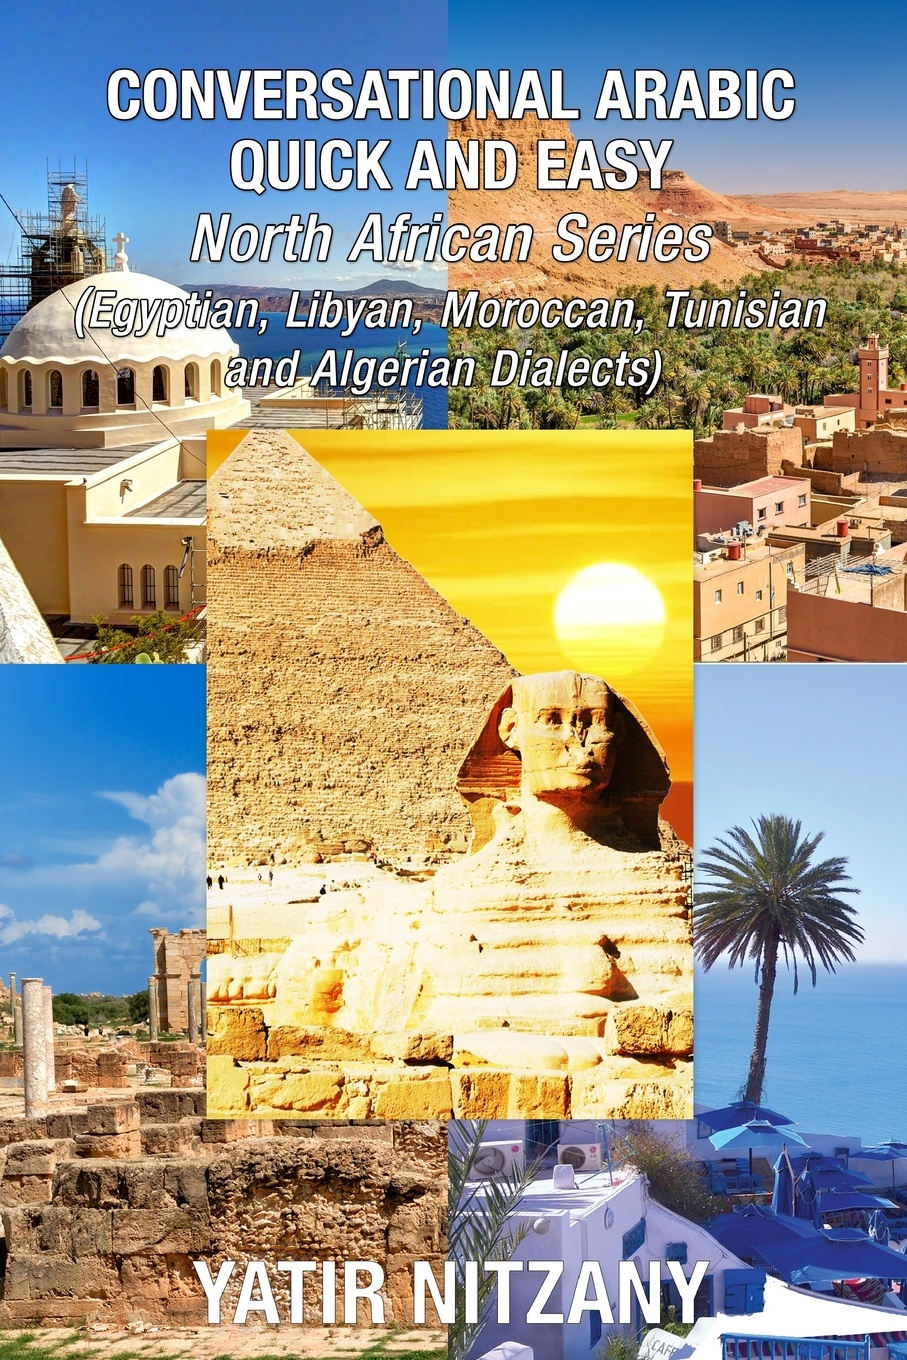 Yatir Nitzany Conversational Arabic Quick and Easy - North African Dialects. Egyptian Arabic, Libyan Arabic, Moroccan Dialect, Tunisian Dialect, Algerian Dialect.